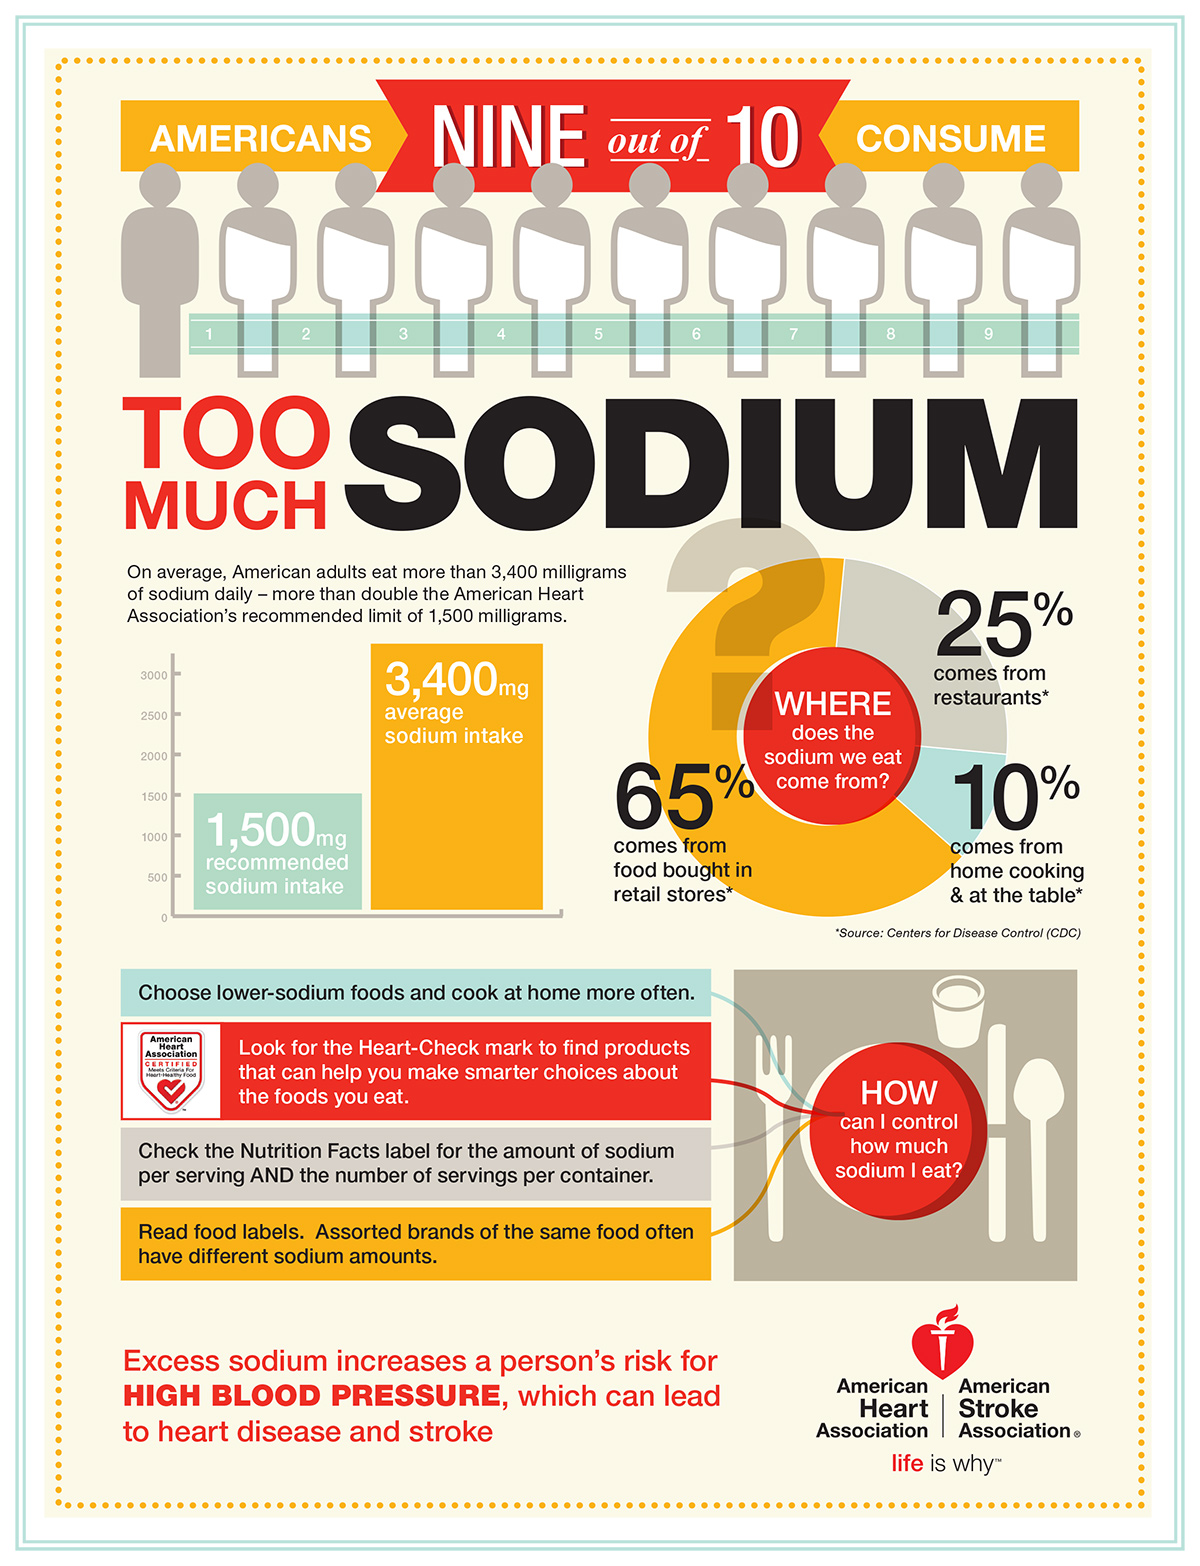 9 out of 10 Americans eat too much sodium